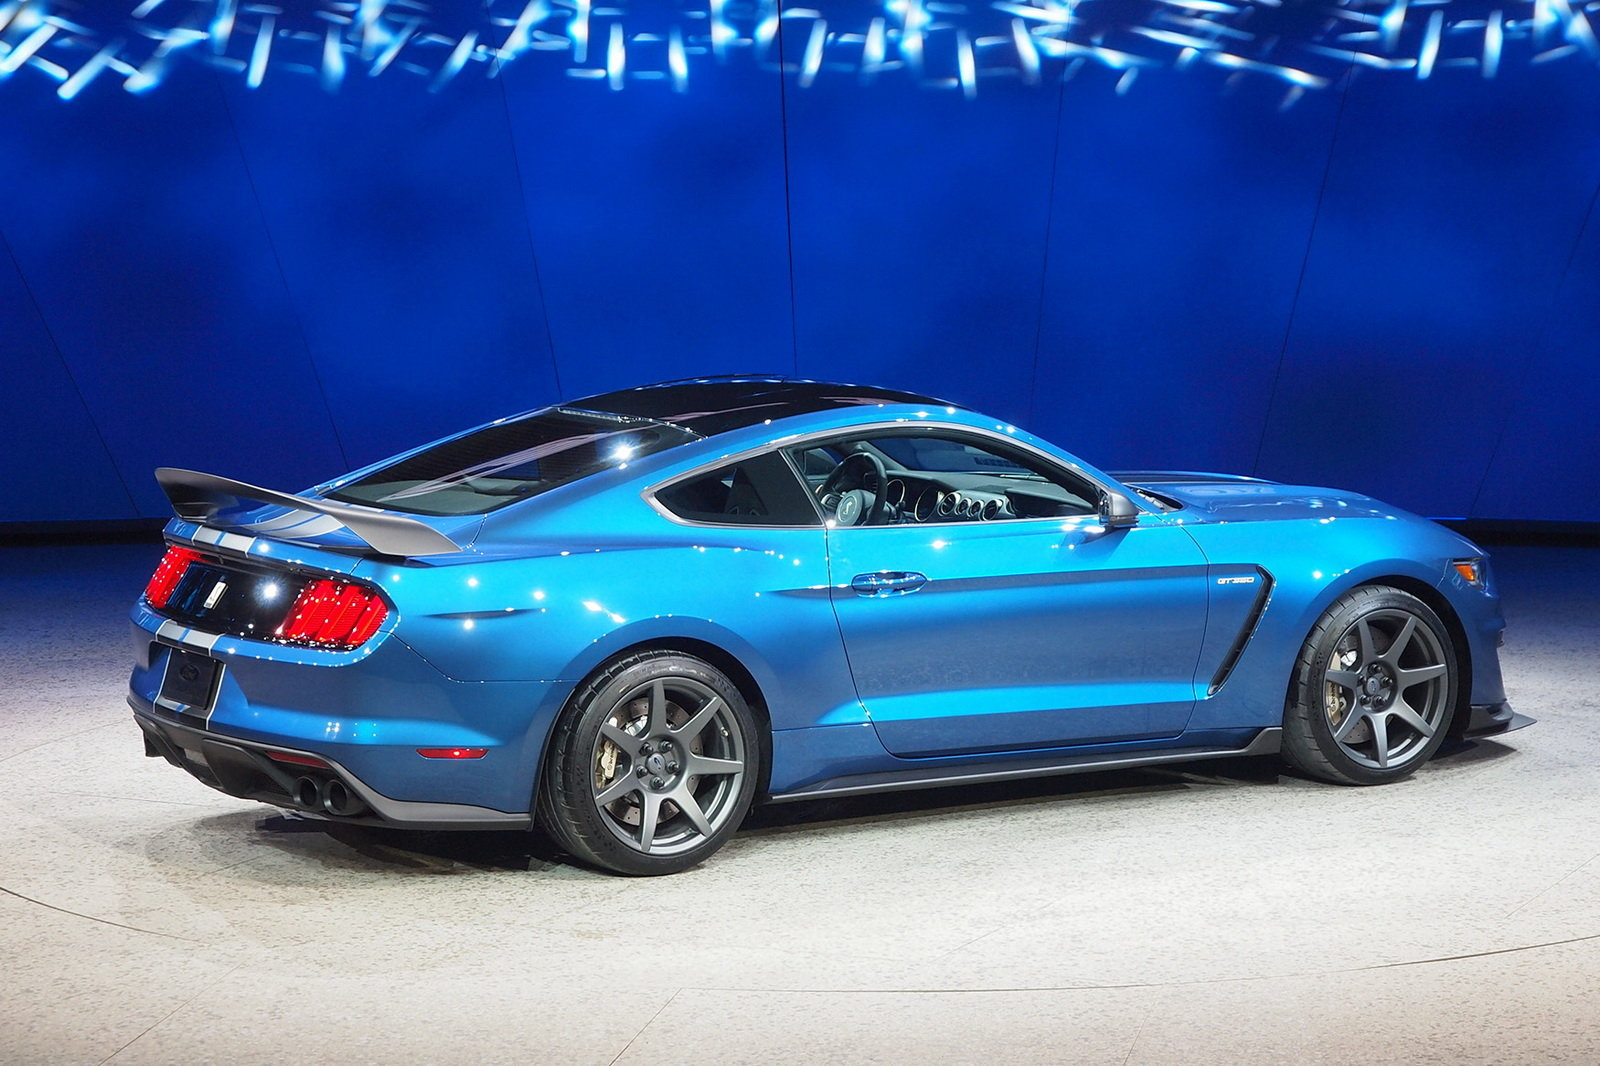 2016 Ford Mustang Shelby Gt350r Rear Side Exterior (Photo 1 of 47)